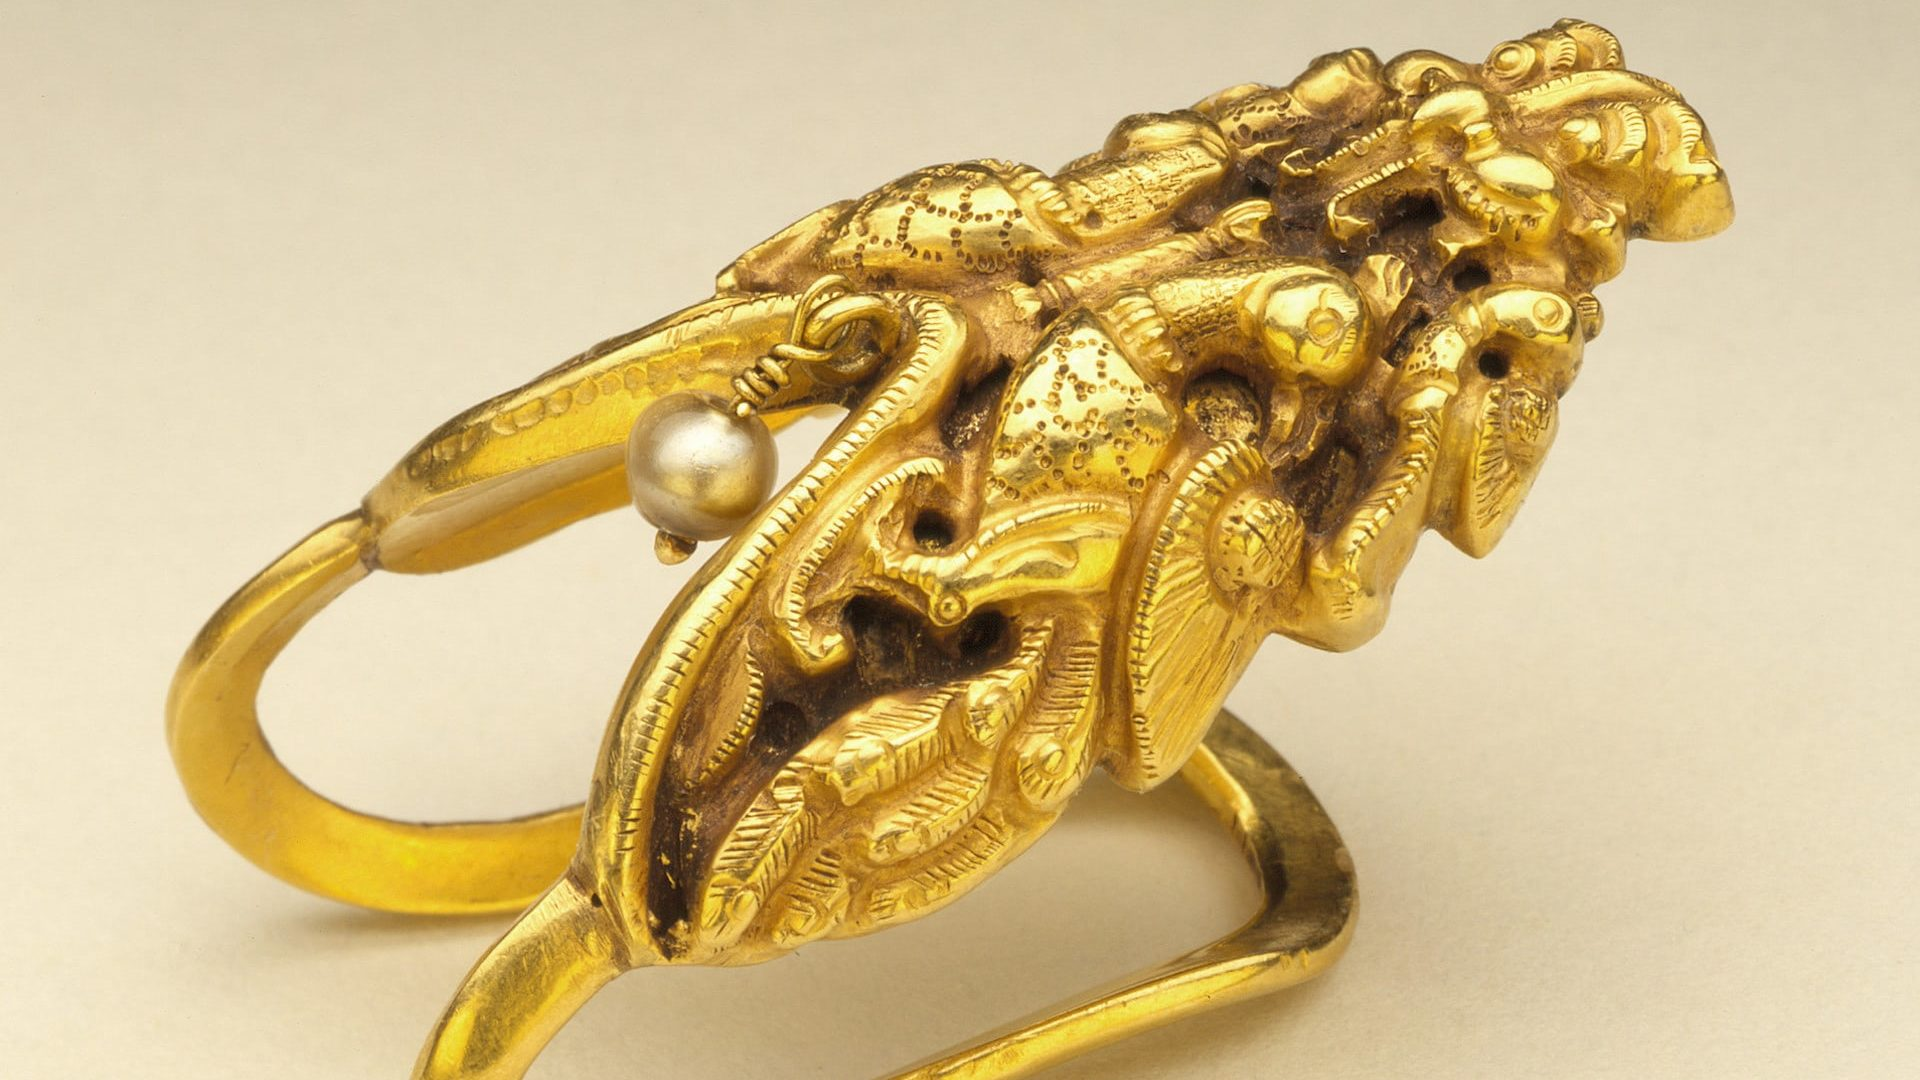 Finger Ring (neli). Tamil Nadu, early 19th century. Gold with pendant pearl. LACMA